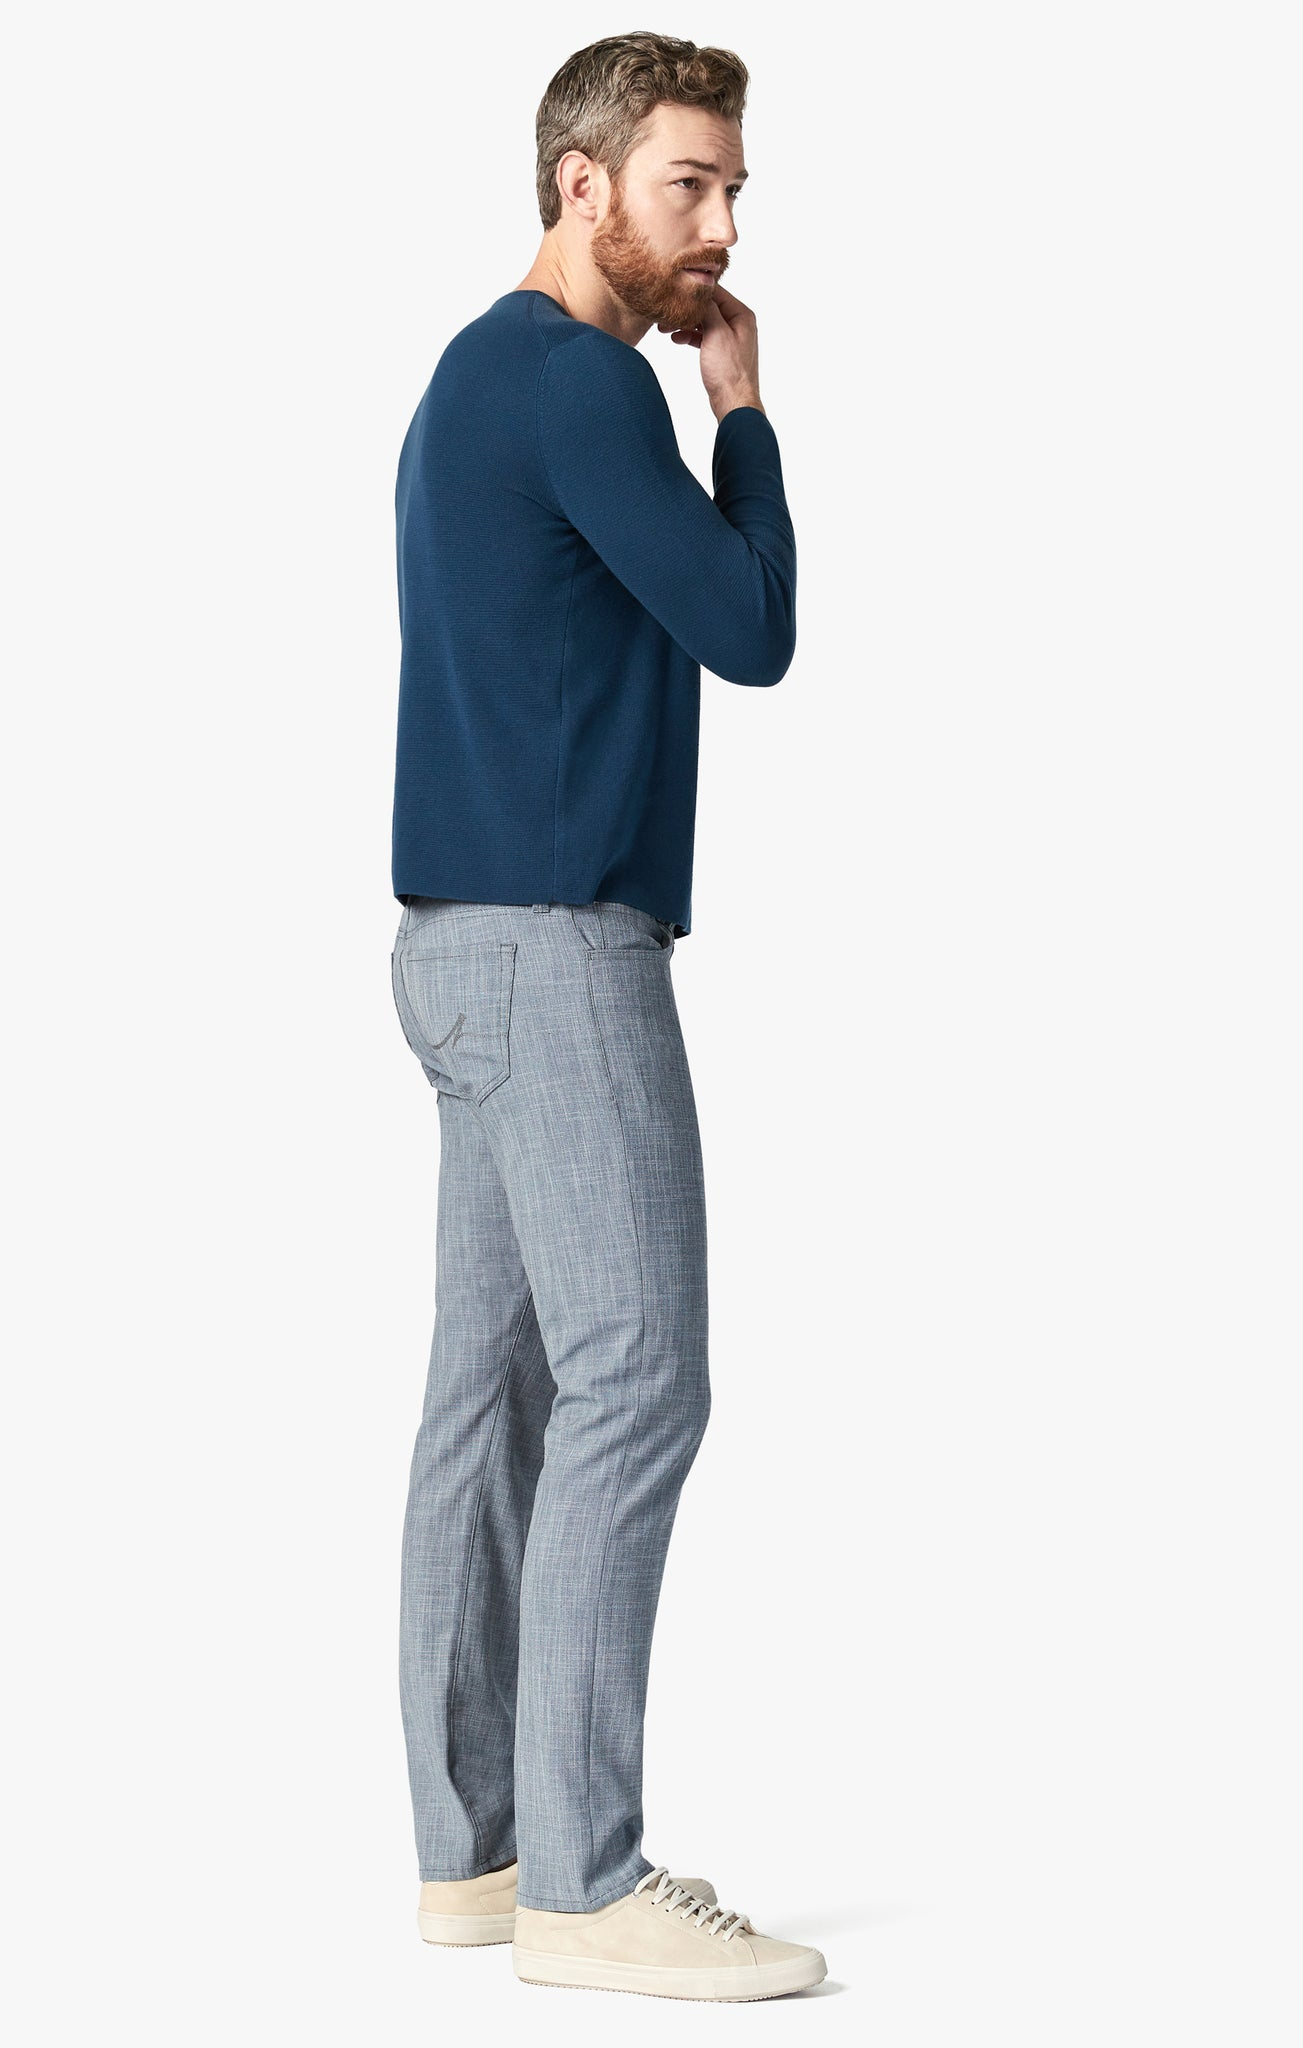 Courage Straight Leg Pants in Grey Cross Twill